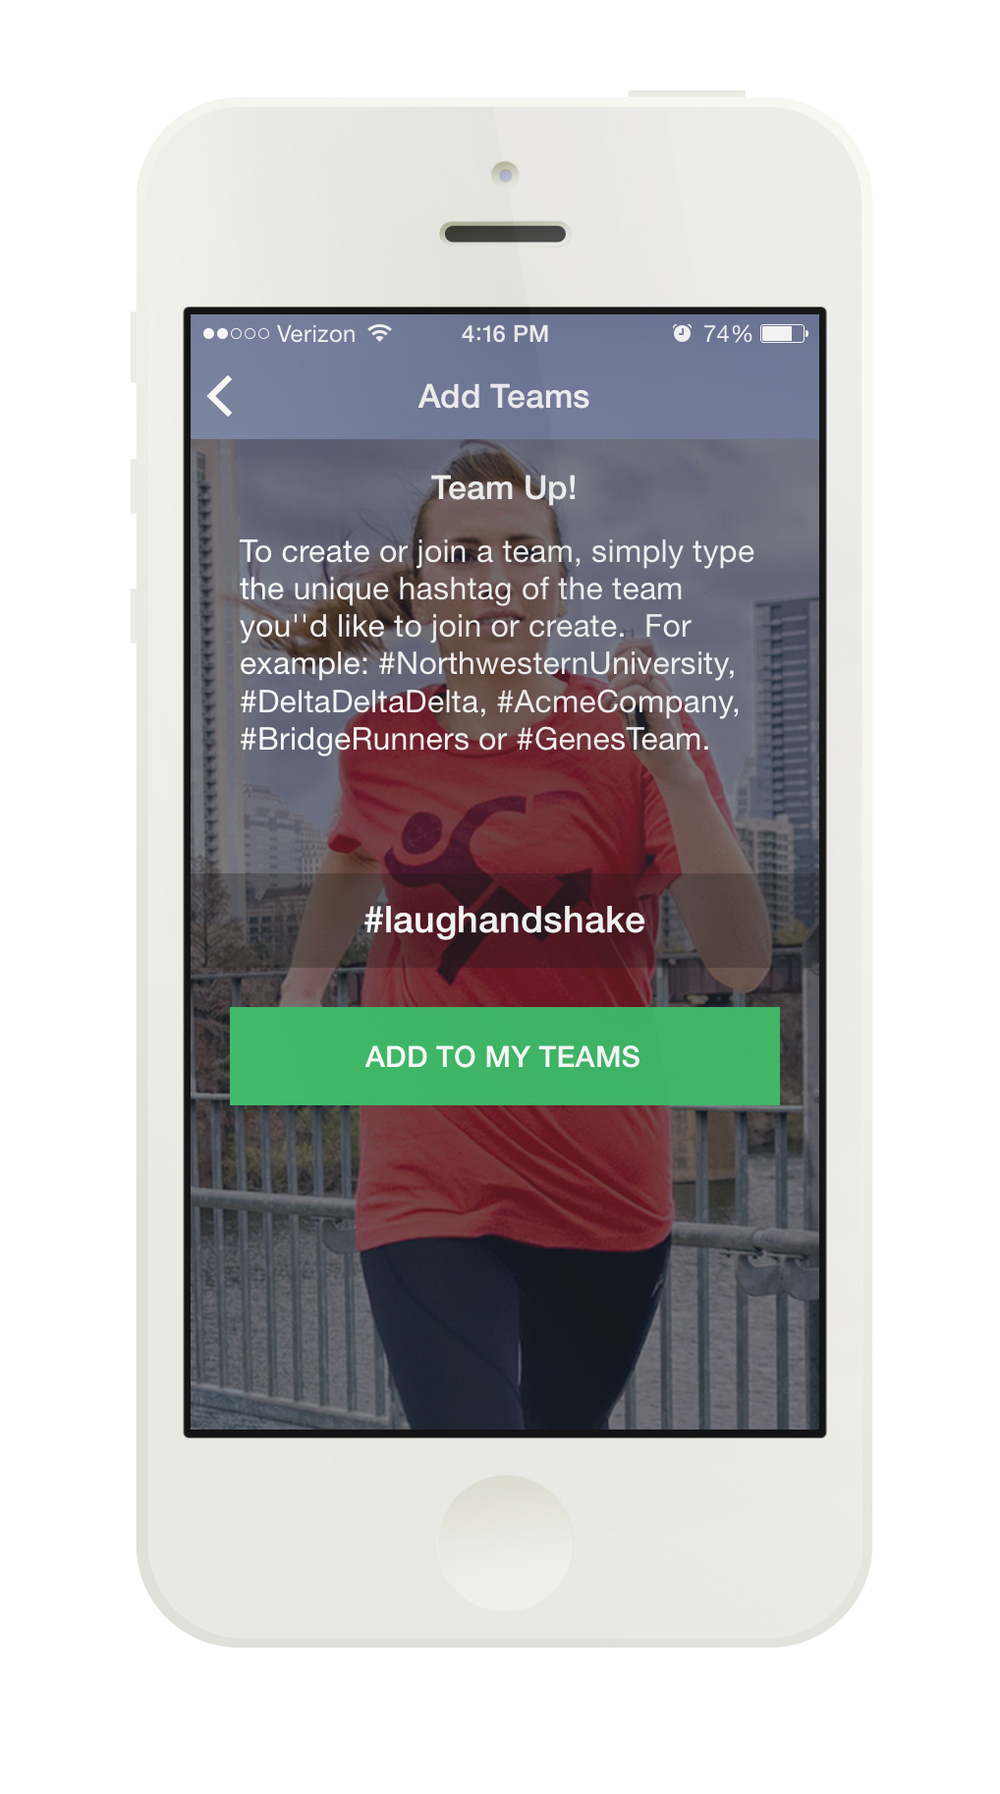 Step 2 : enter our hashtag #laughandshake and add that to your teams. Now your miles will be logged with us!